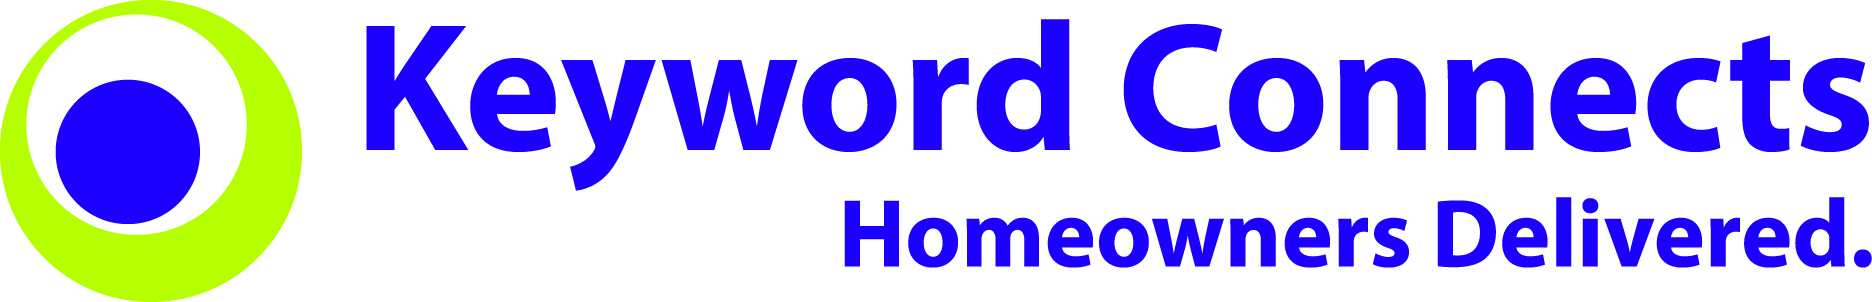 Keyword Connects Logo